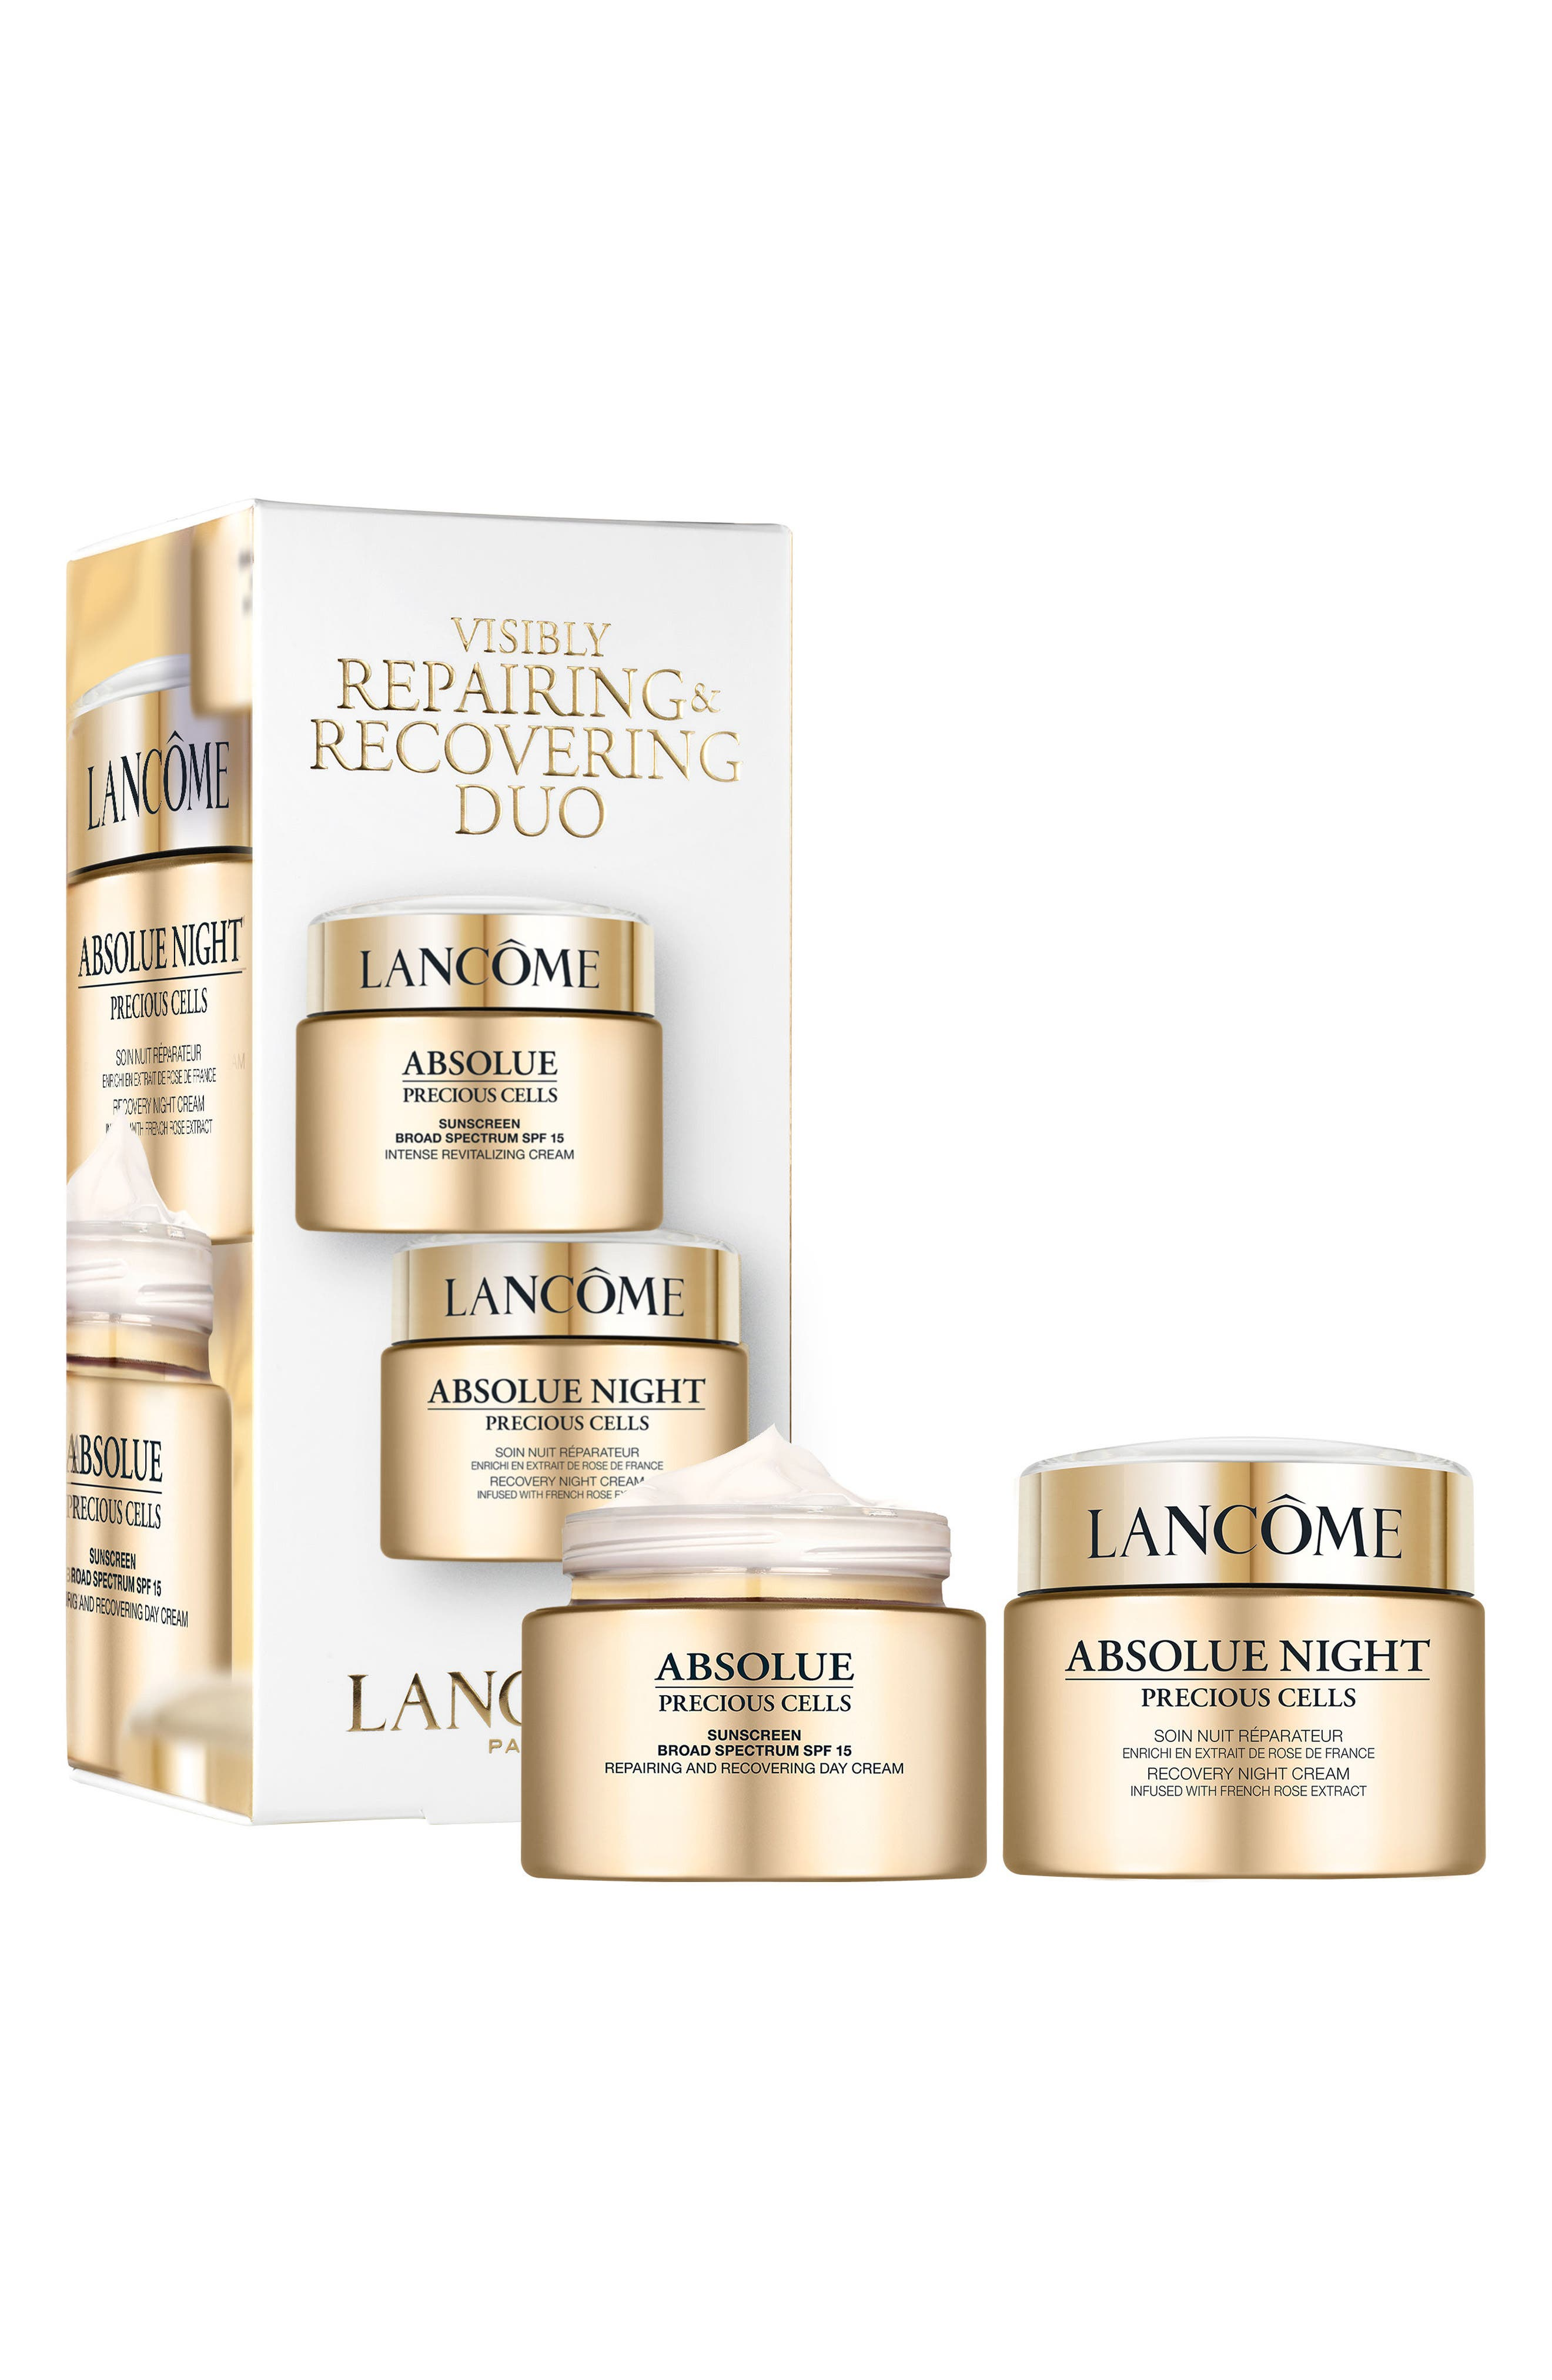 Alternate Image 1 Selected - Lancôme Absolue Precious Cells Visibly Repairing & Recovering Duo ($380 Value)